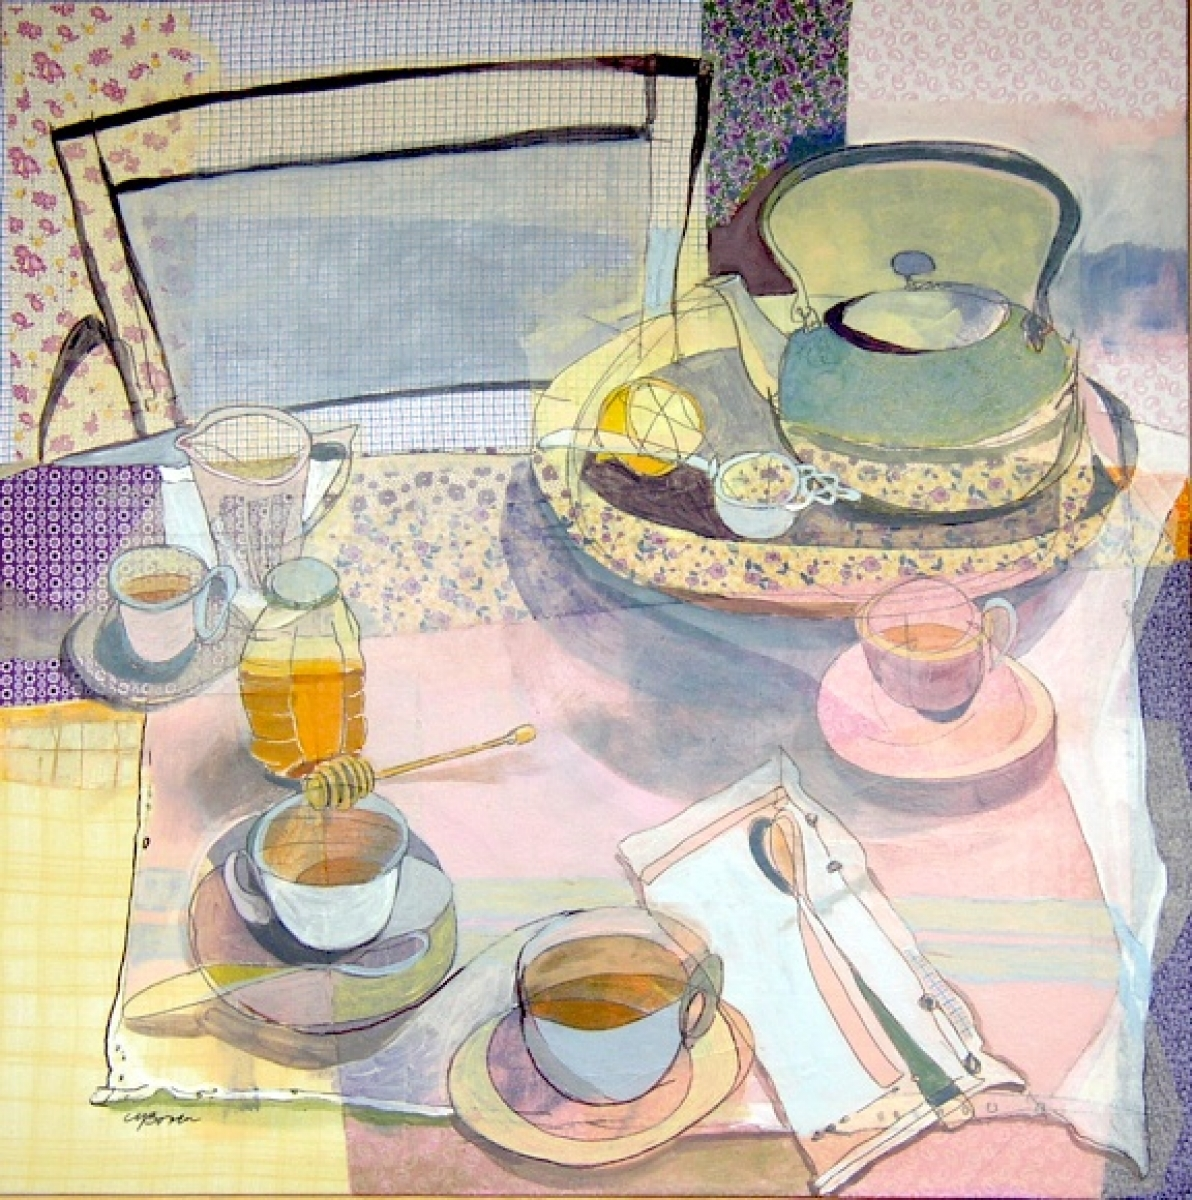 Grandma's tea and linen (large view)